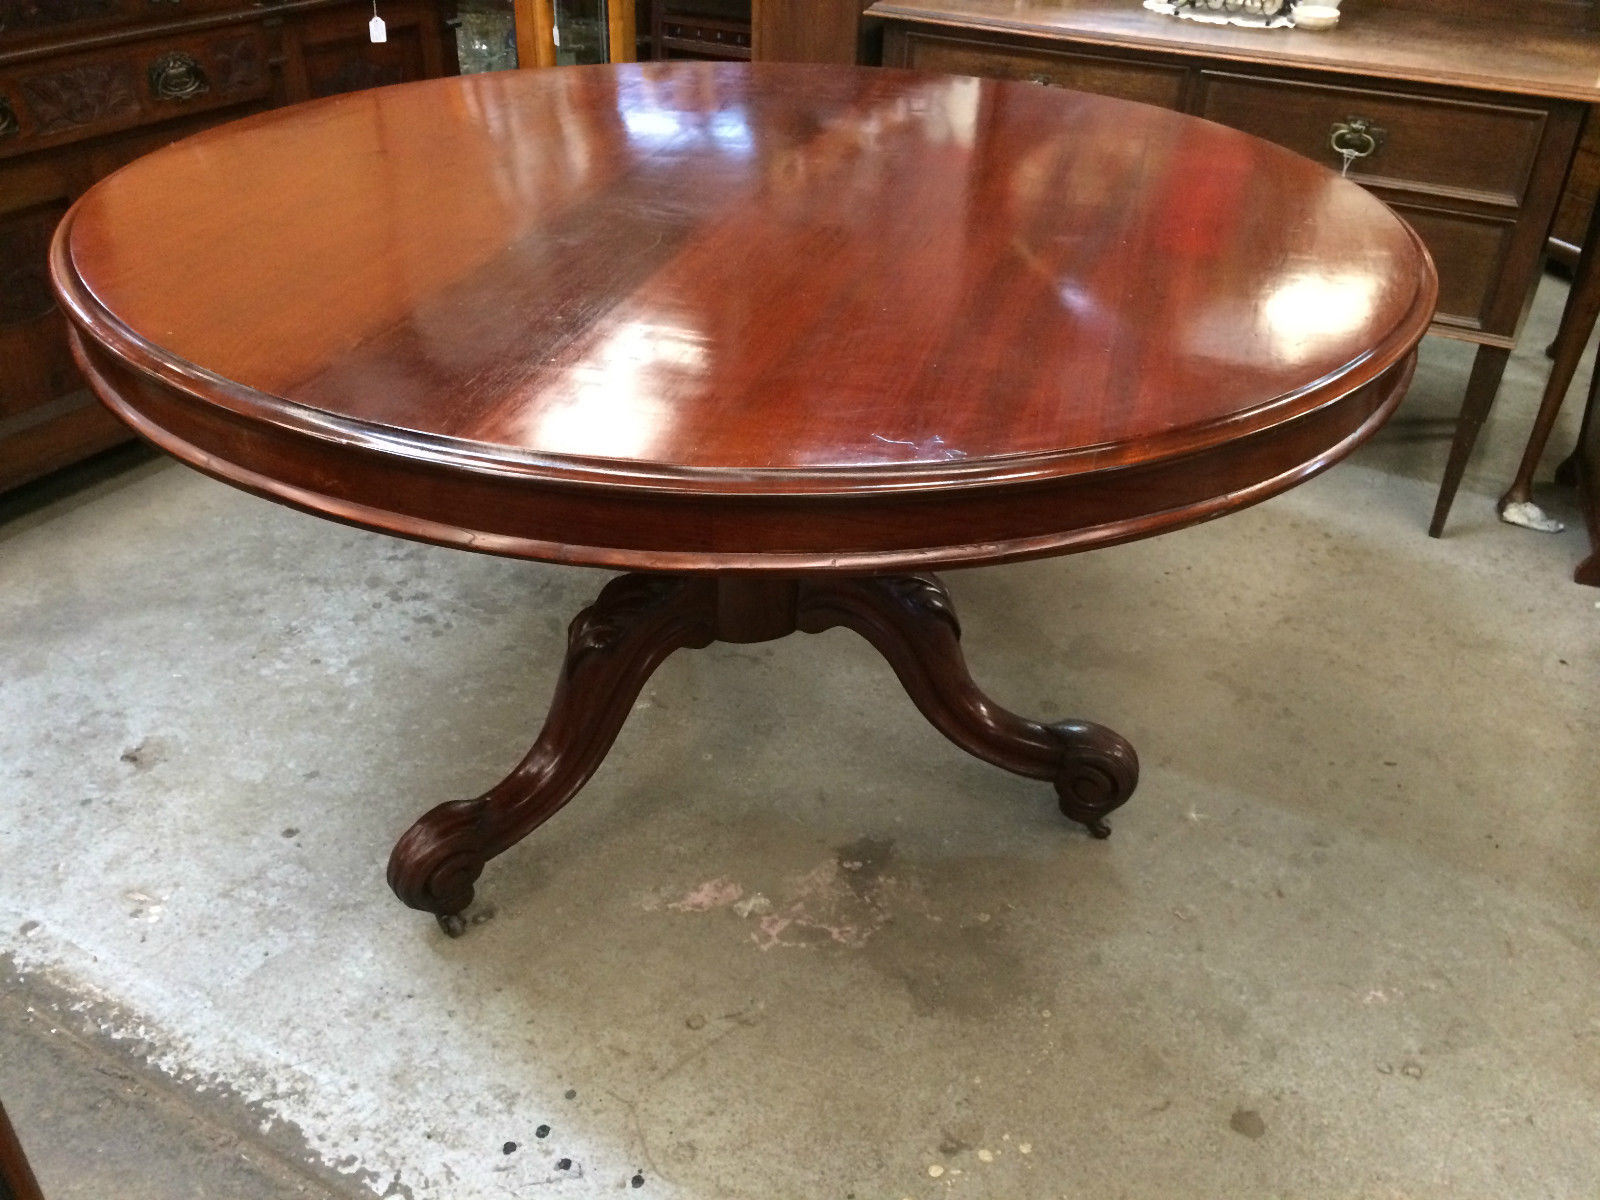 Antique Victorian Cedar Circular Tilt Morning Dining Table | Melbourne | Halsey Road Recyclers